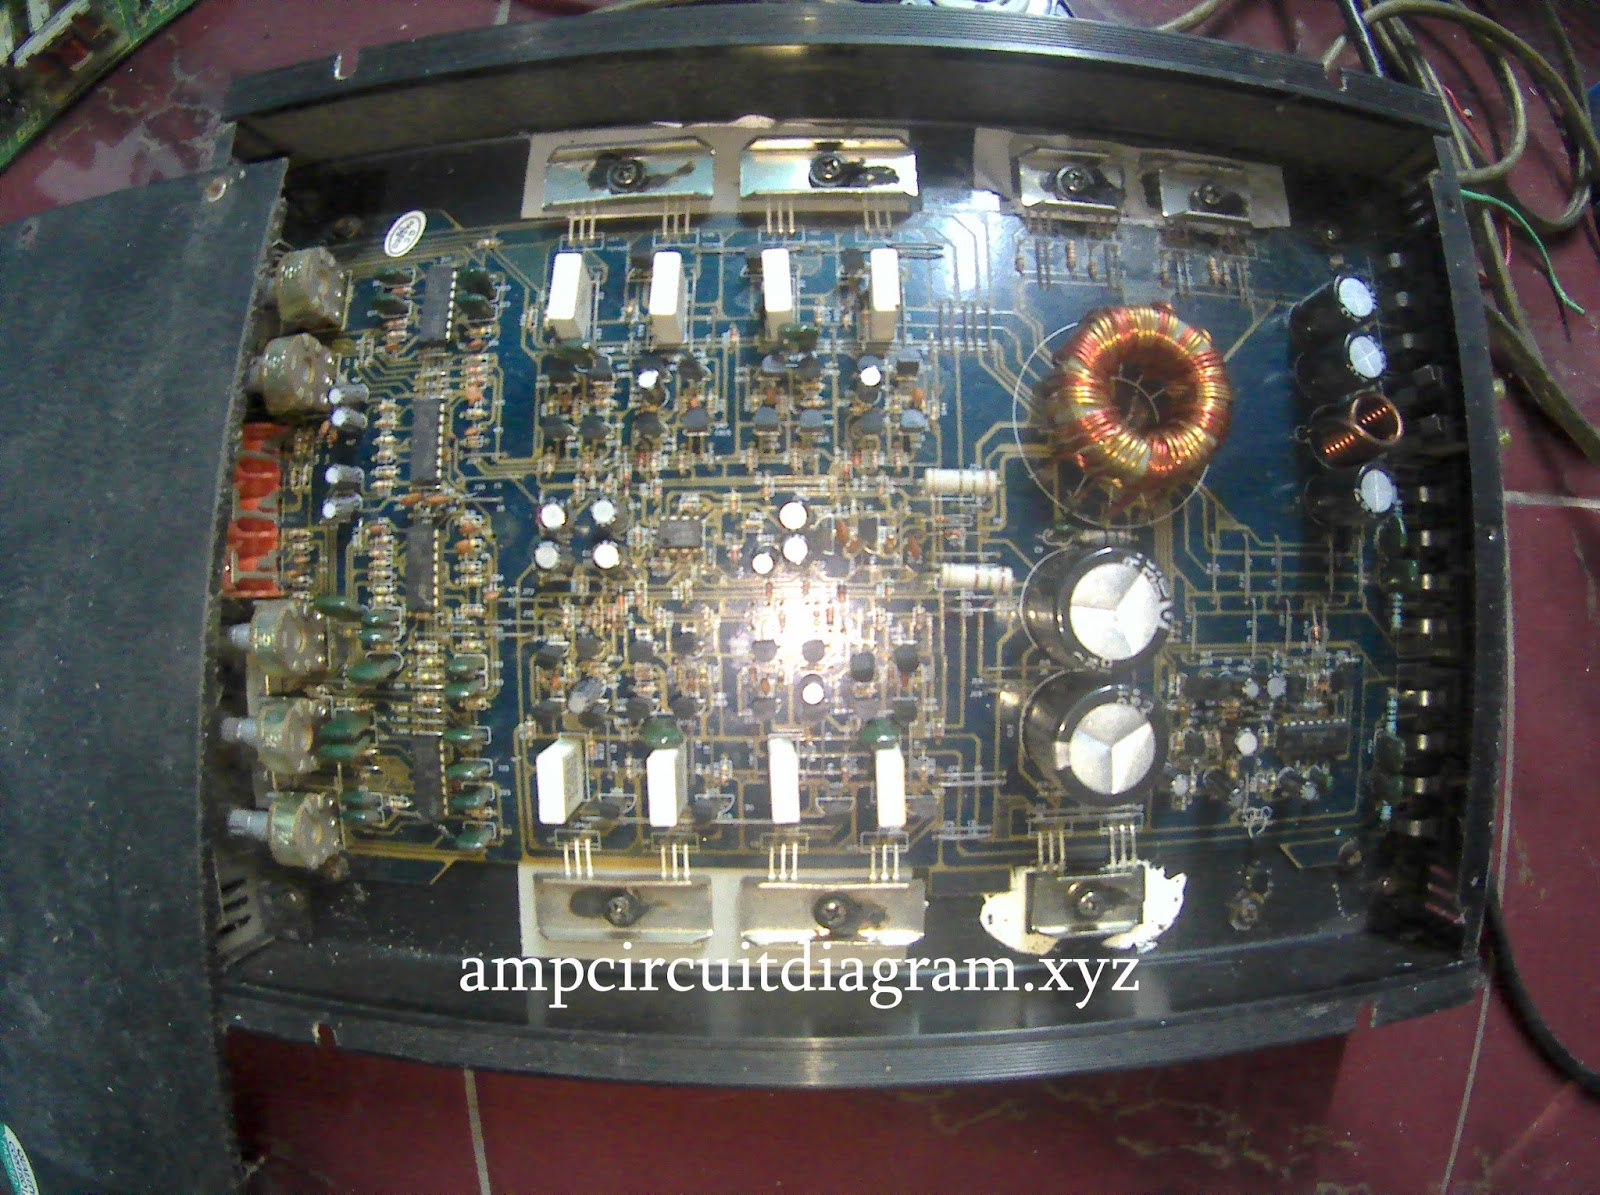 Power Amplifier Images La4550 Audio Circuit Car Pcb And Components